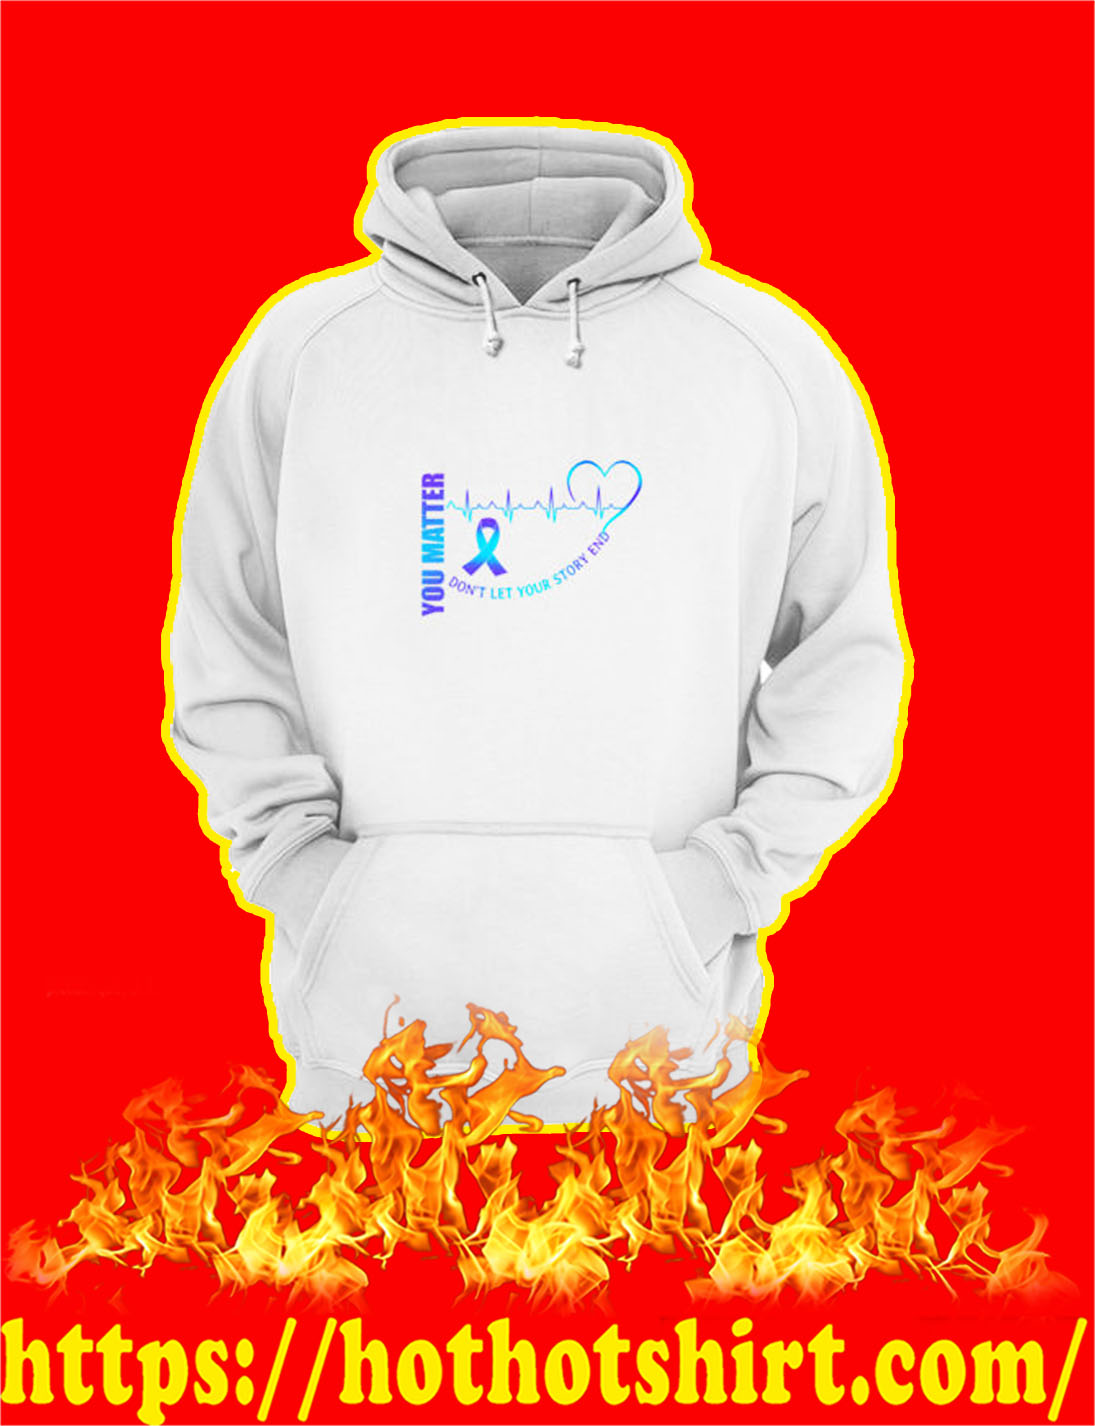 Suicide Prevention You Matter Don't Let Your Story End hoodie